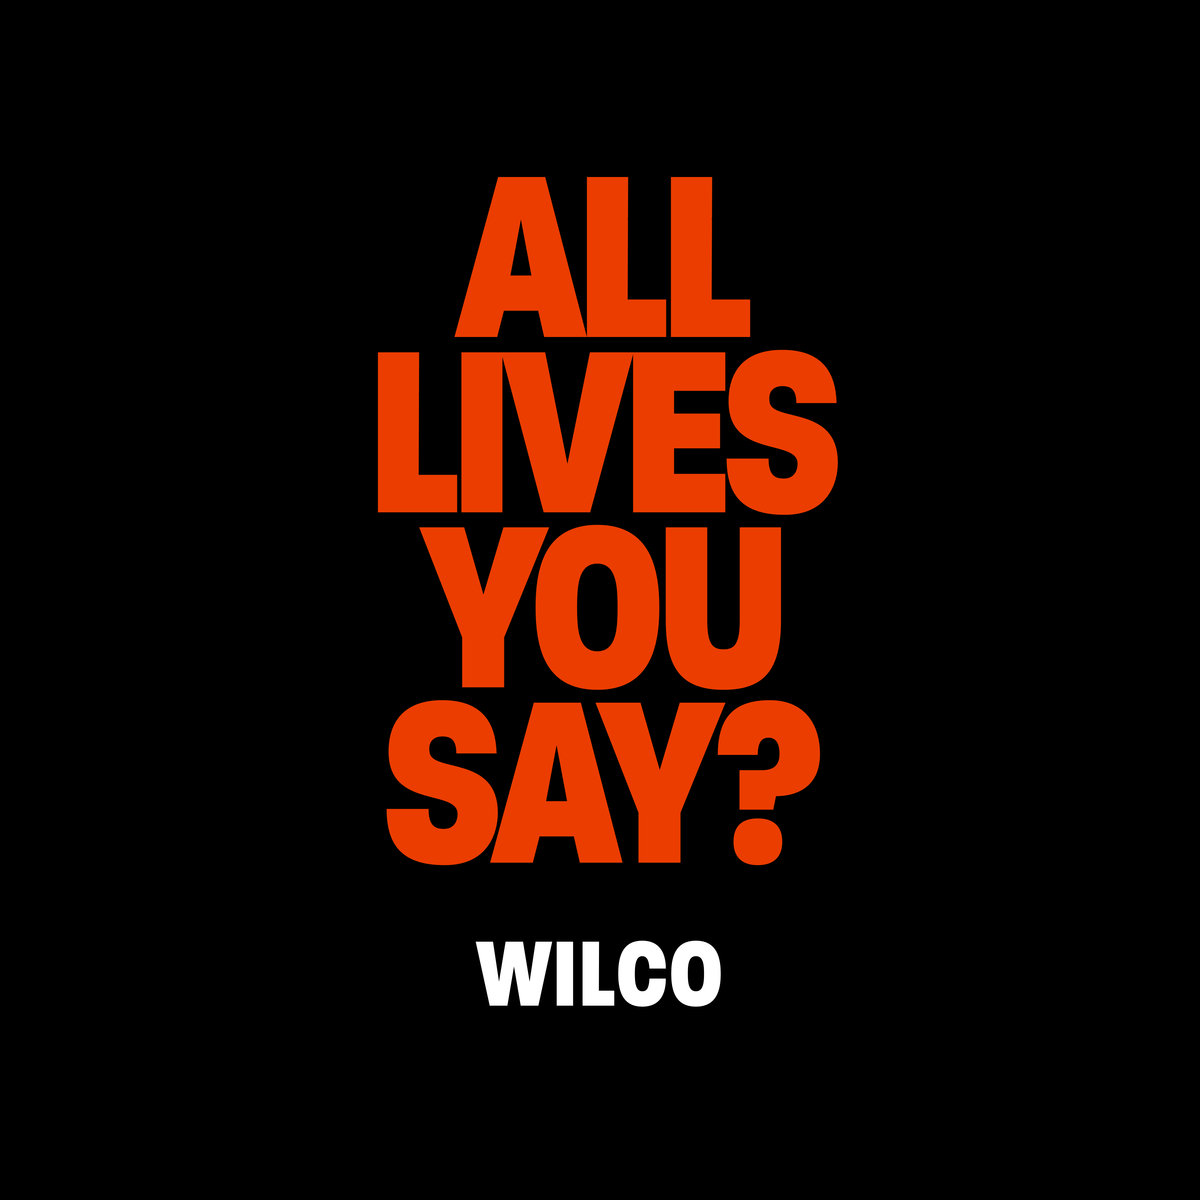 HEAR WHAT'S NEW: Wilco – All Lives, You Say?